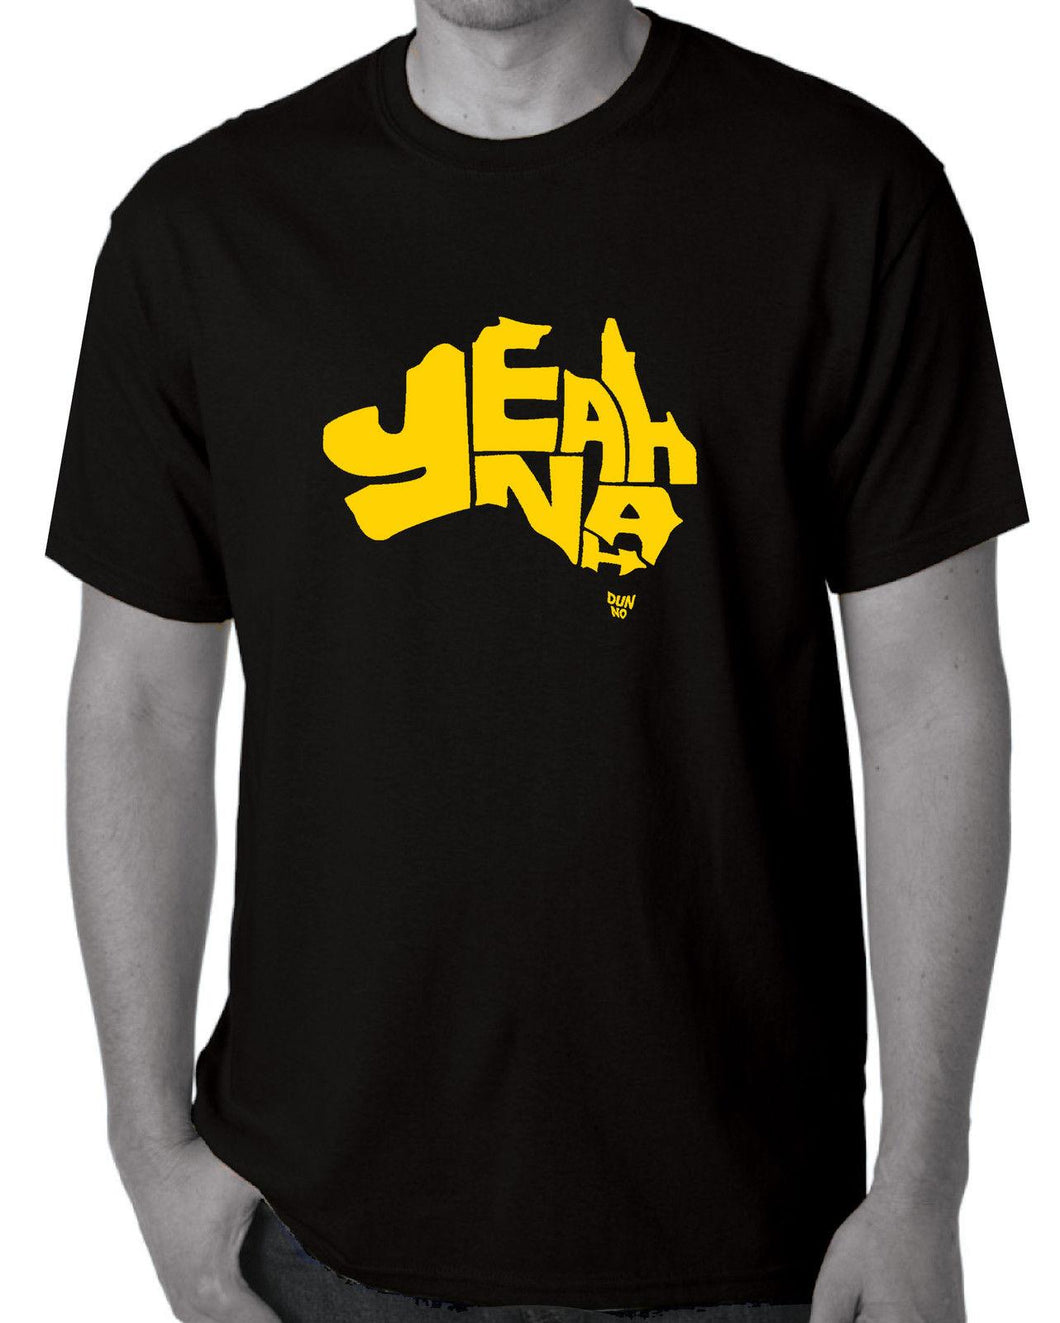 Buy Yeah Nah Dunno Tee Shirts online, best prices, buy now online at www.GrabThisNow.co